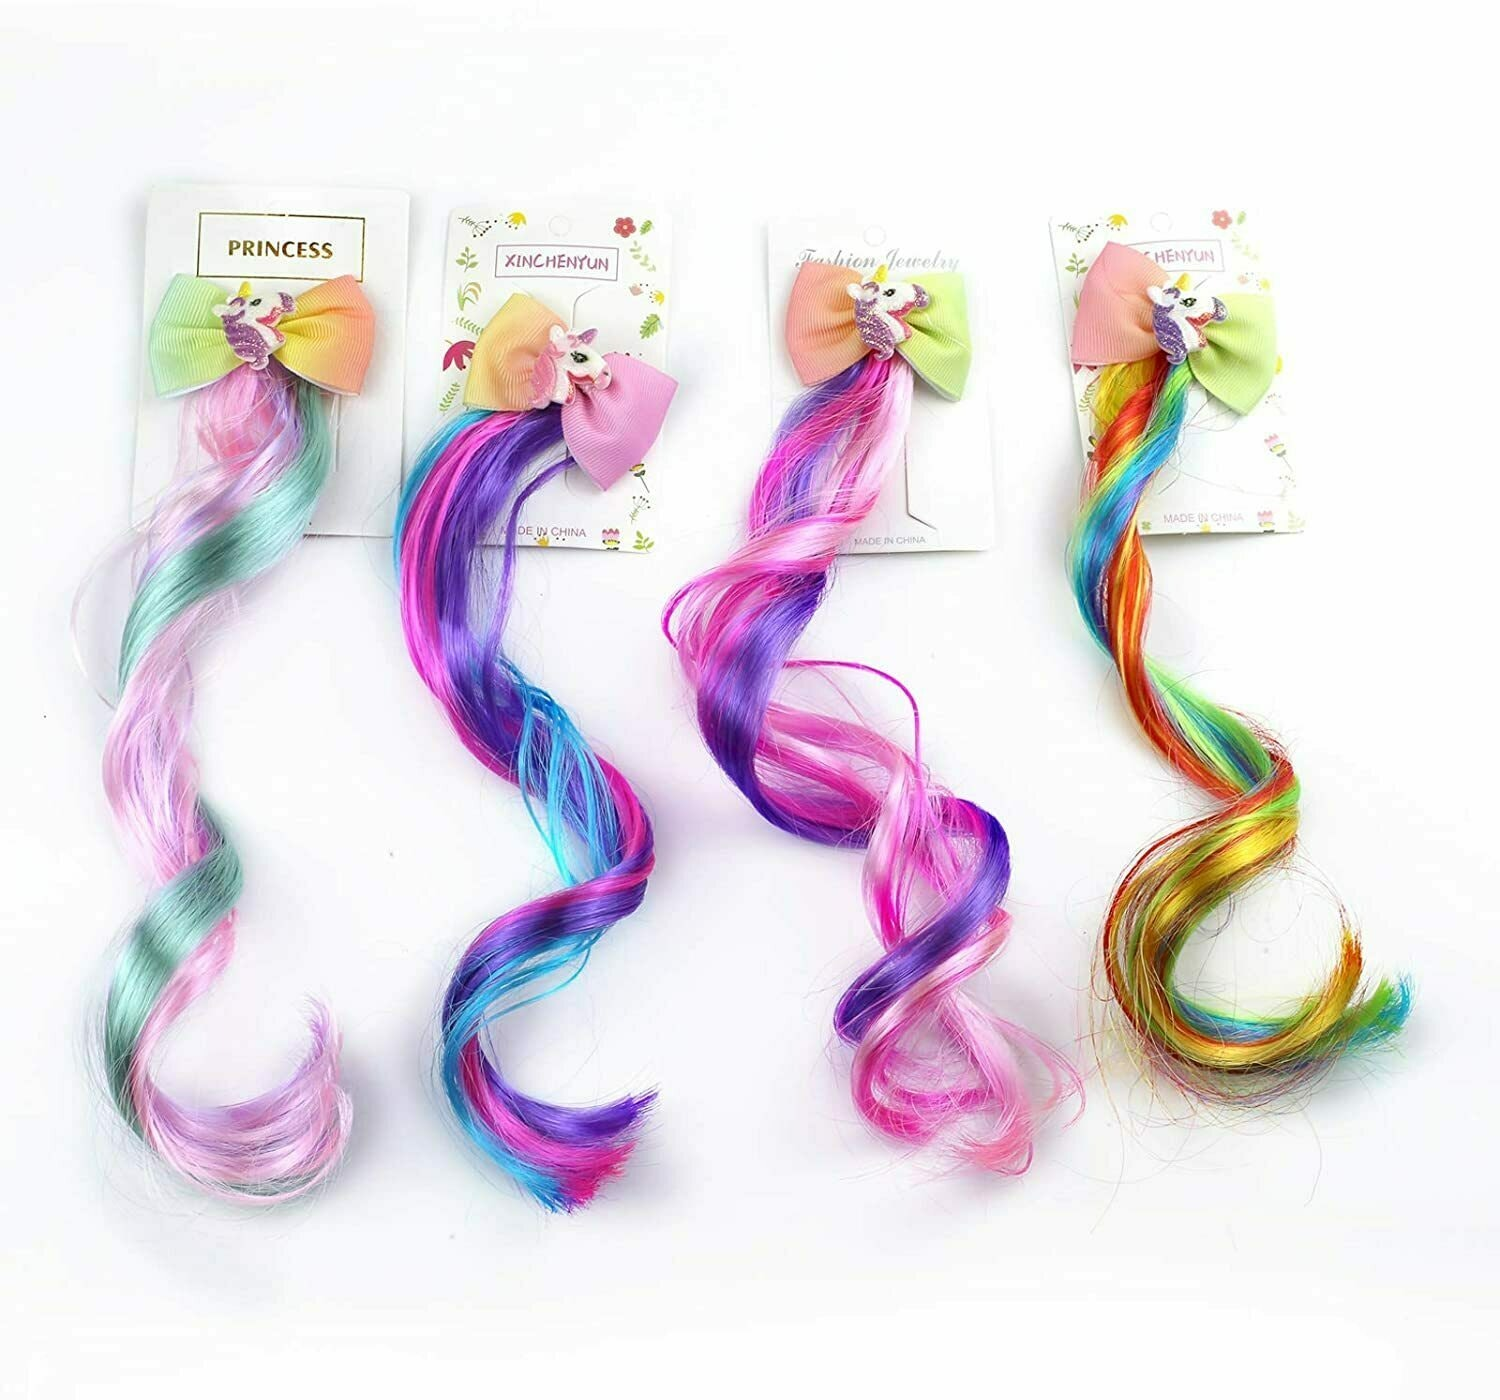 Sunormi 4 Pcs Multi-Colors Kids Girls Hair Clips in 15 Inch Hair Extensions